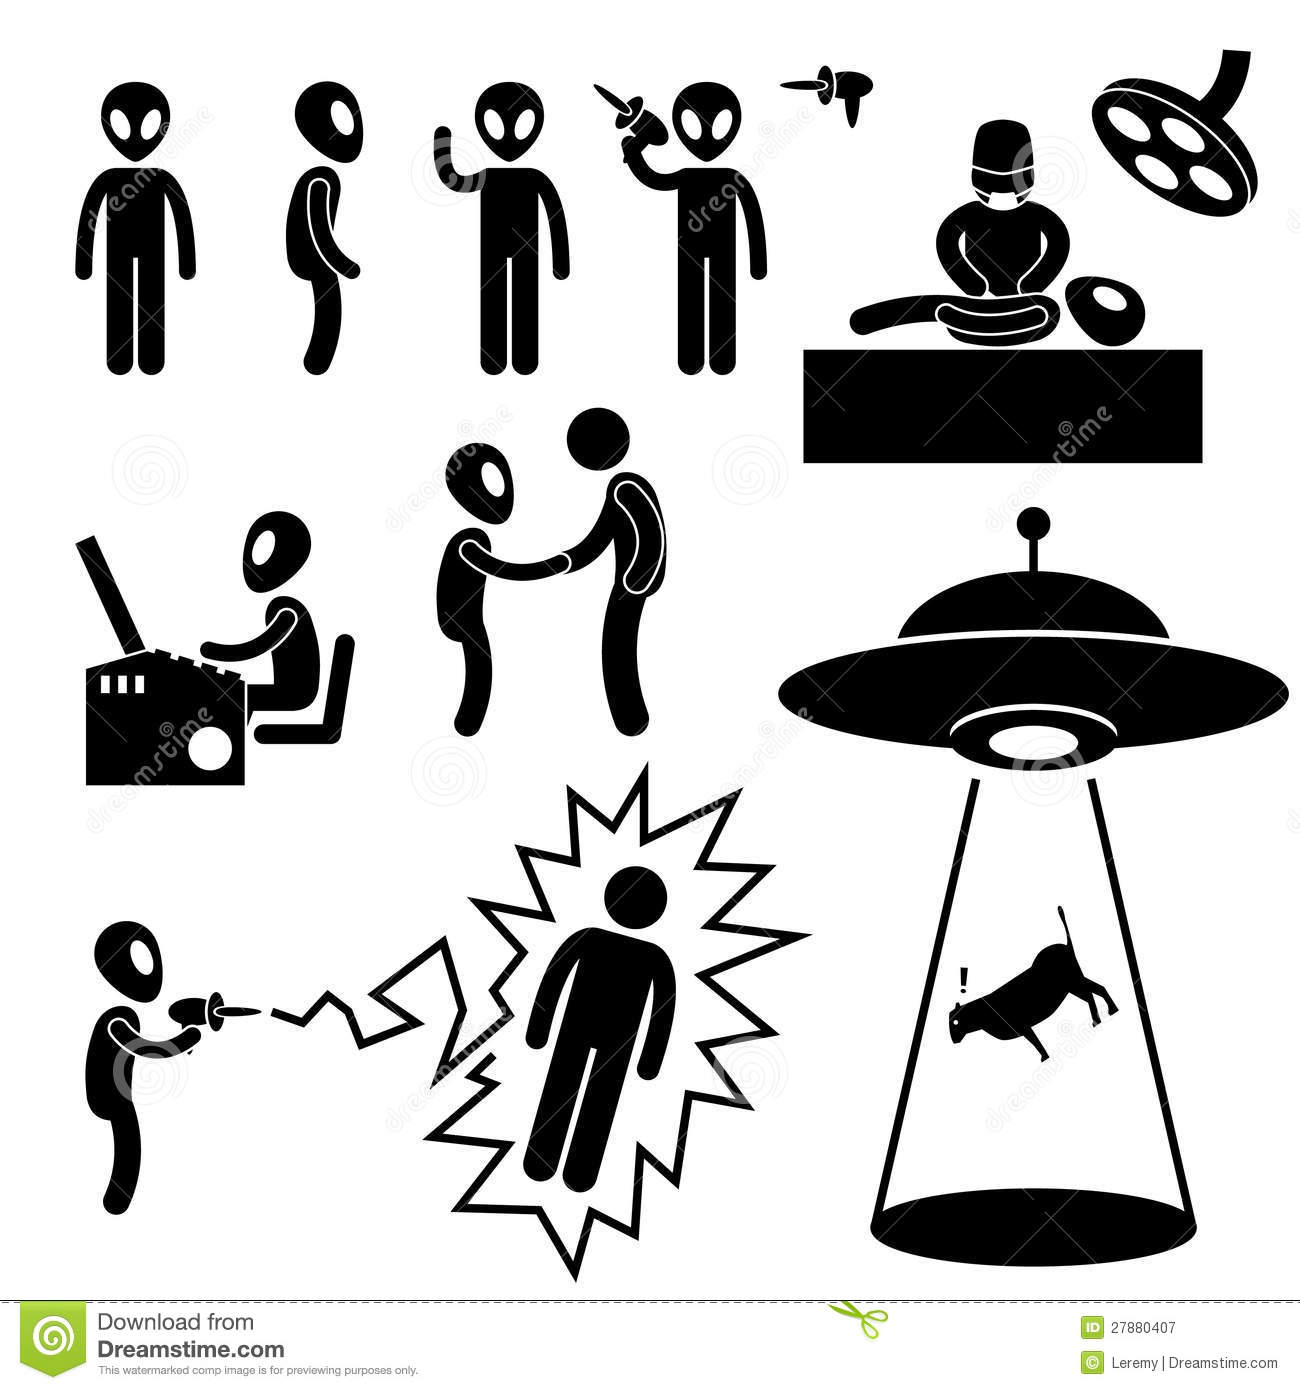 Ufo Alien Invaders Pictogram Royalty Free Stock